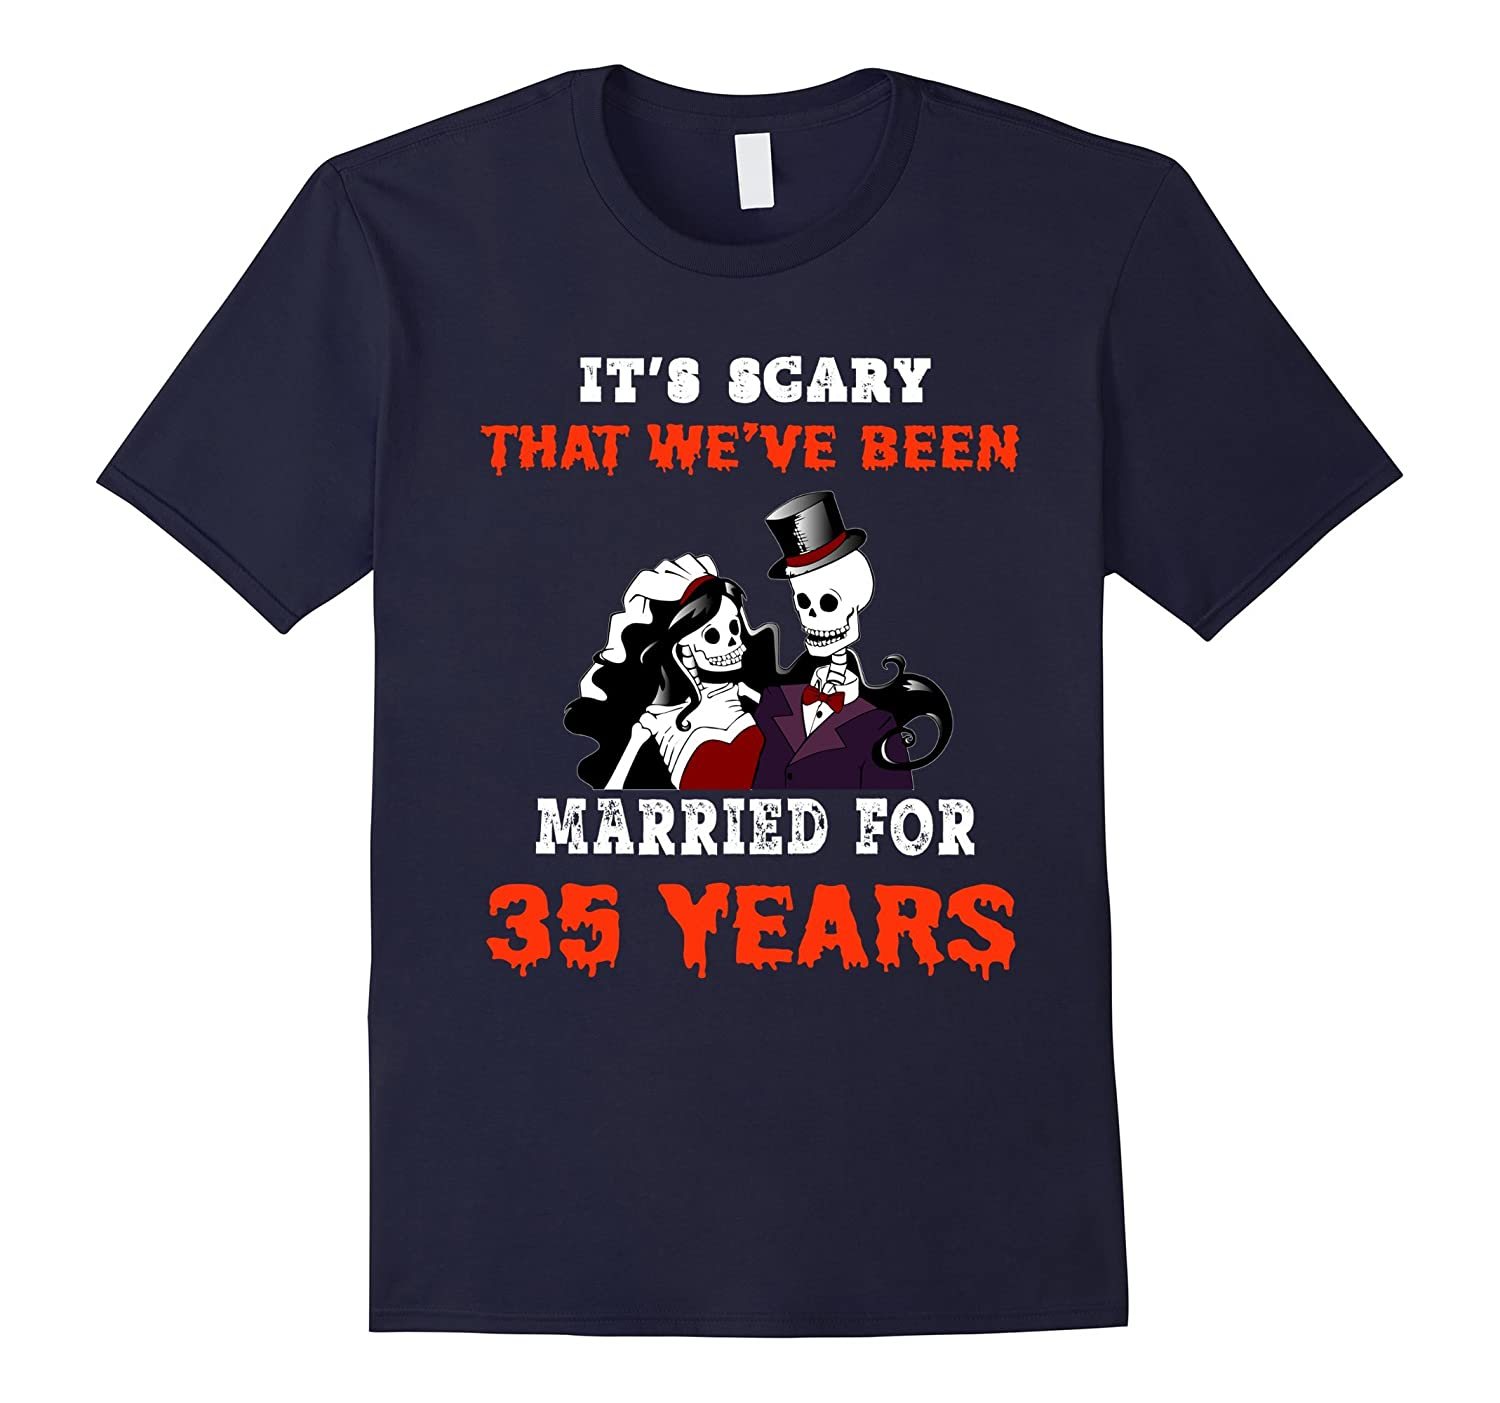 35th Anniversary Gift. Funny Halloween Costume For Couple.-4LVS